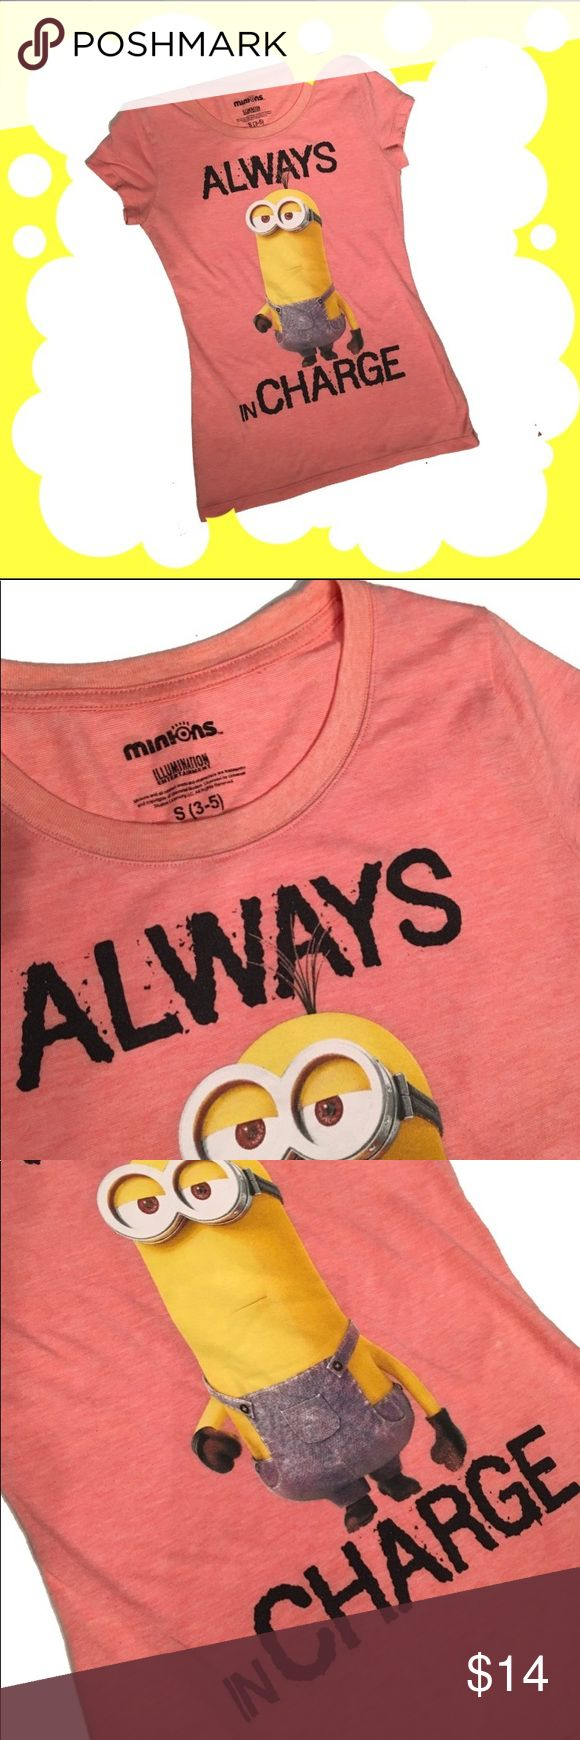 Minions tee Babydoll style. Small 3-5. Illumination Entertainment. 83% polyester 17% cotton. Excellent condition. Tops Tees - Short Sleeve